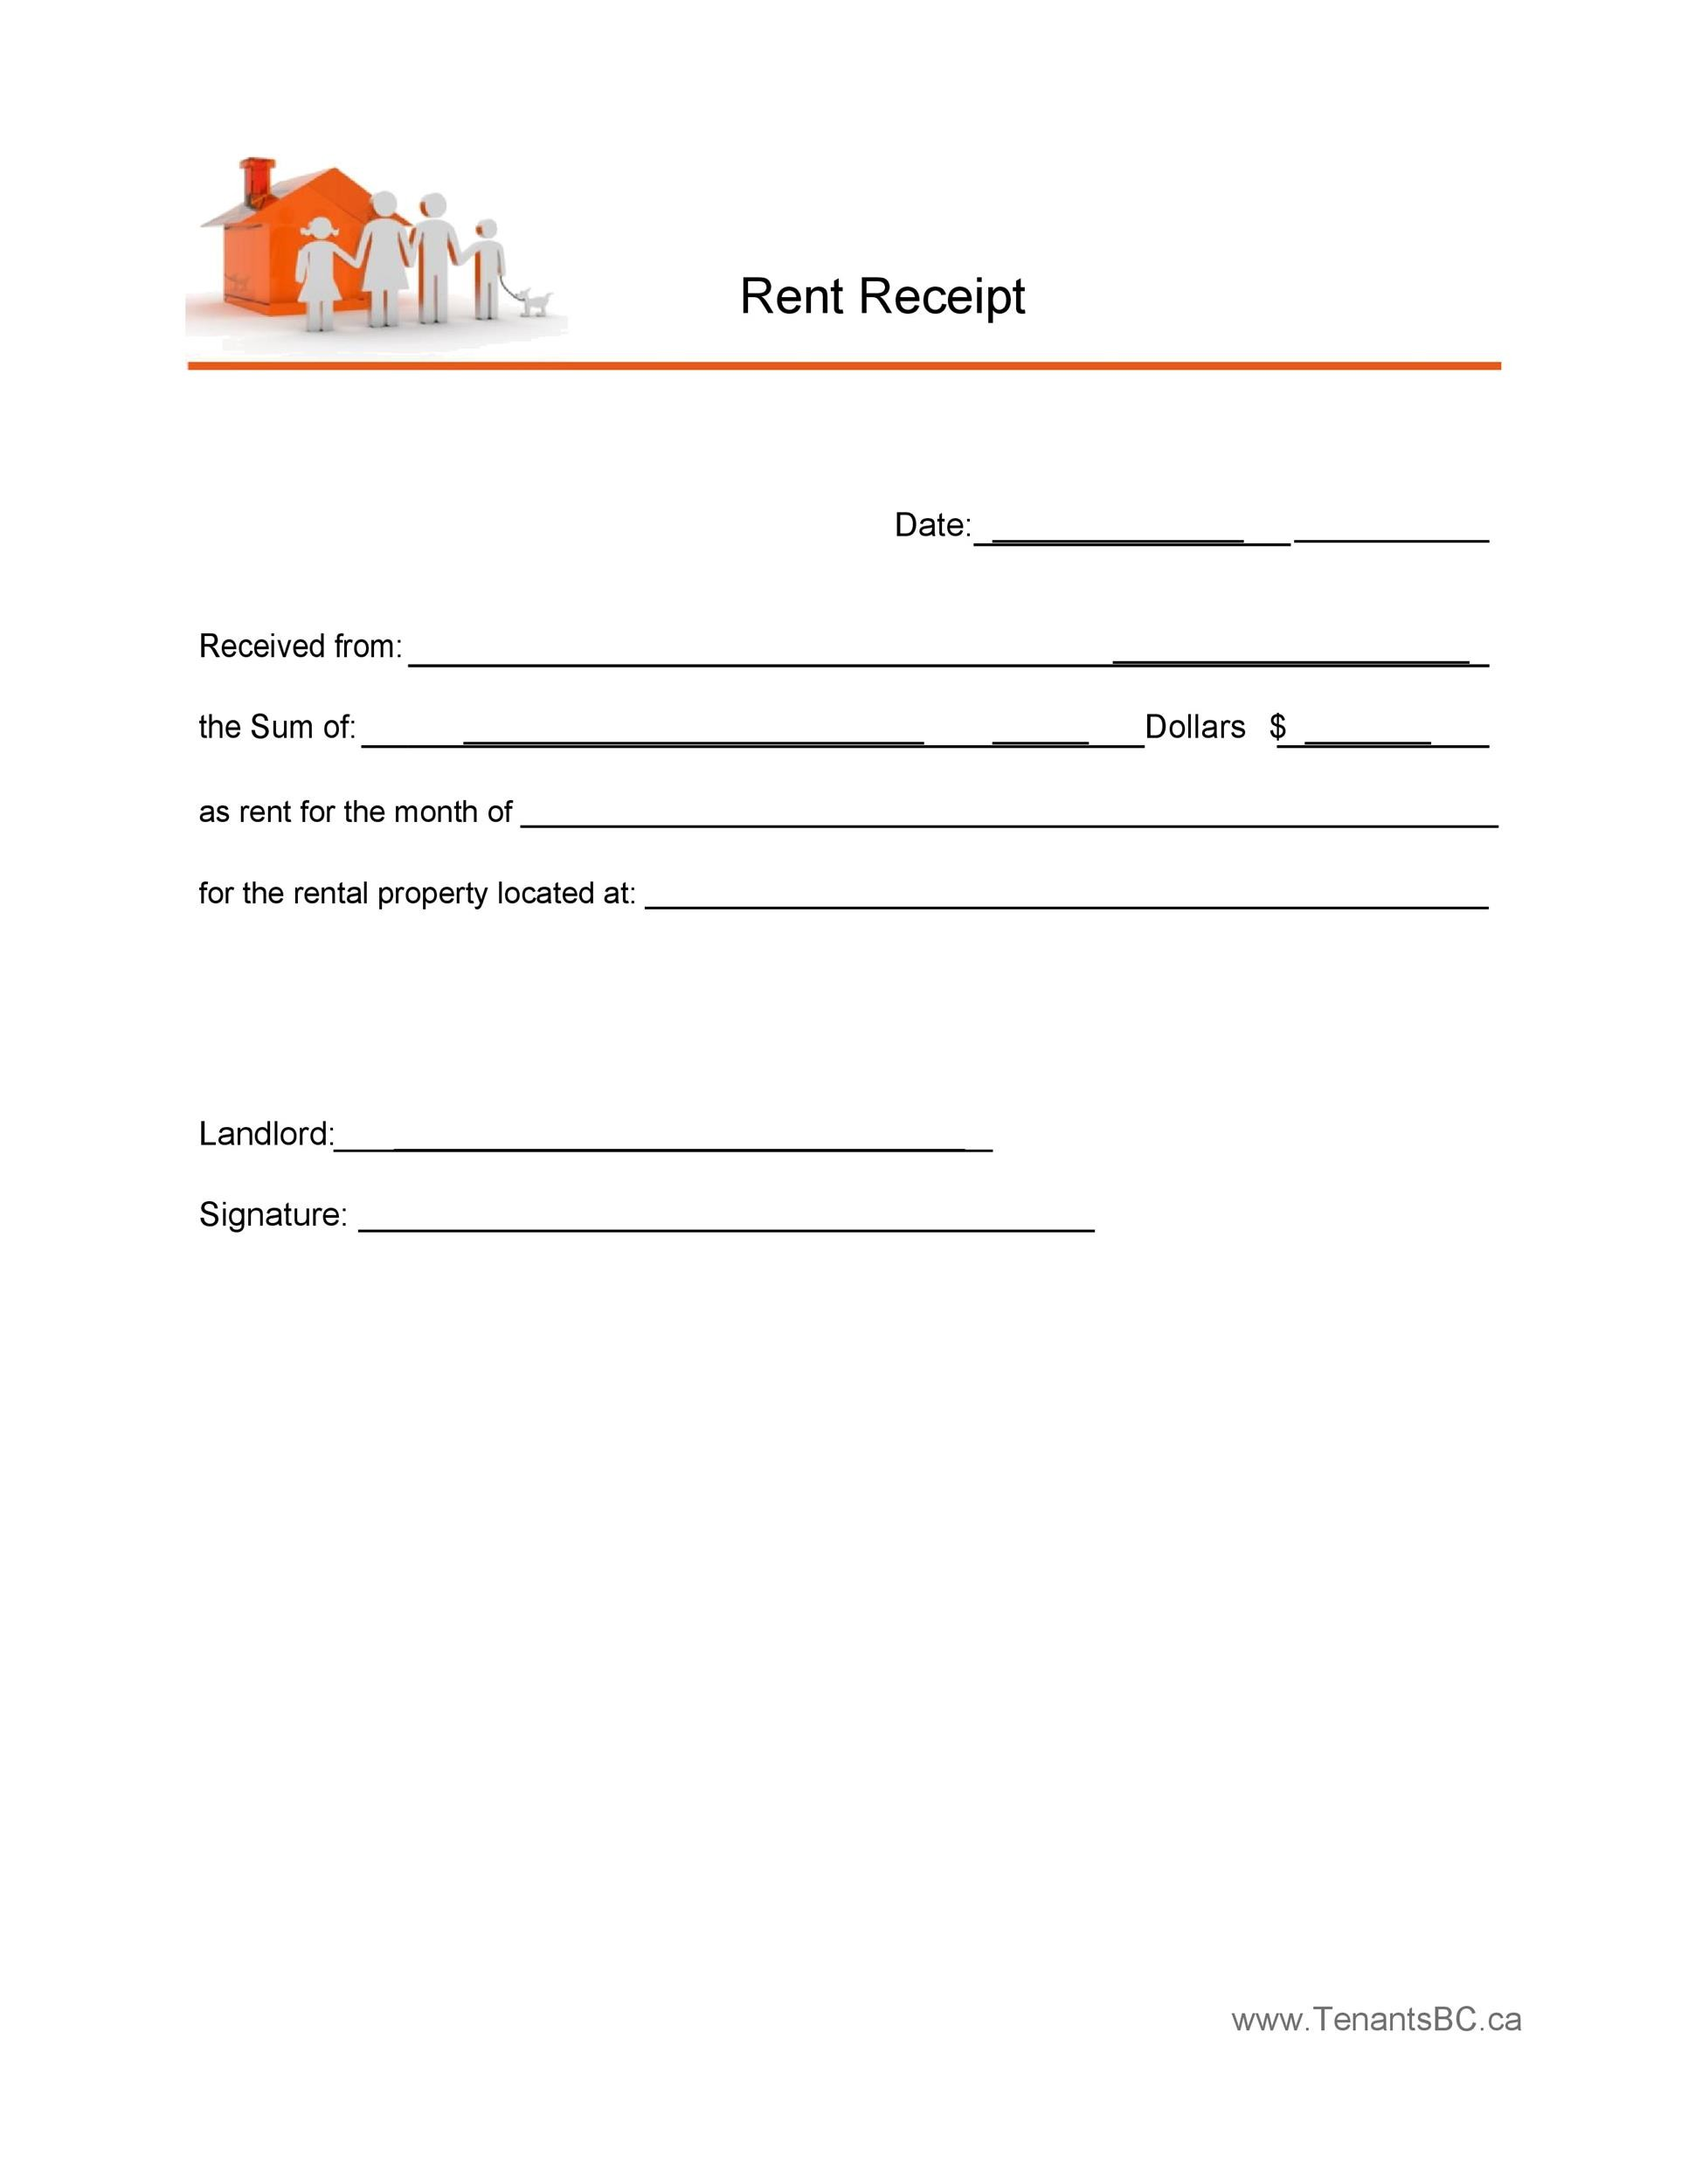 image about Printable Rent Receipts known as 49 Printable Hire Receipts (Free of charge Templates) ᐅ Template Lab